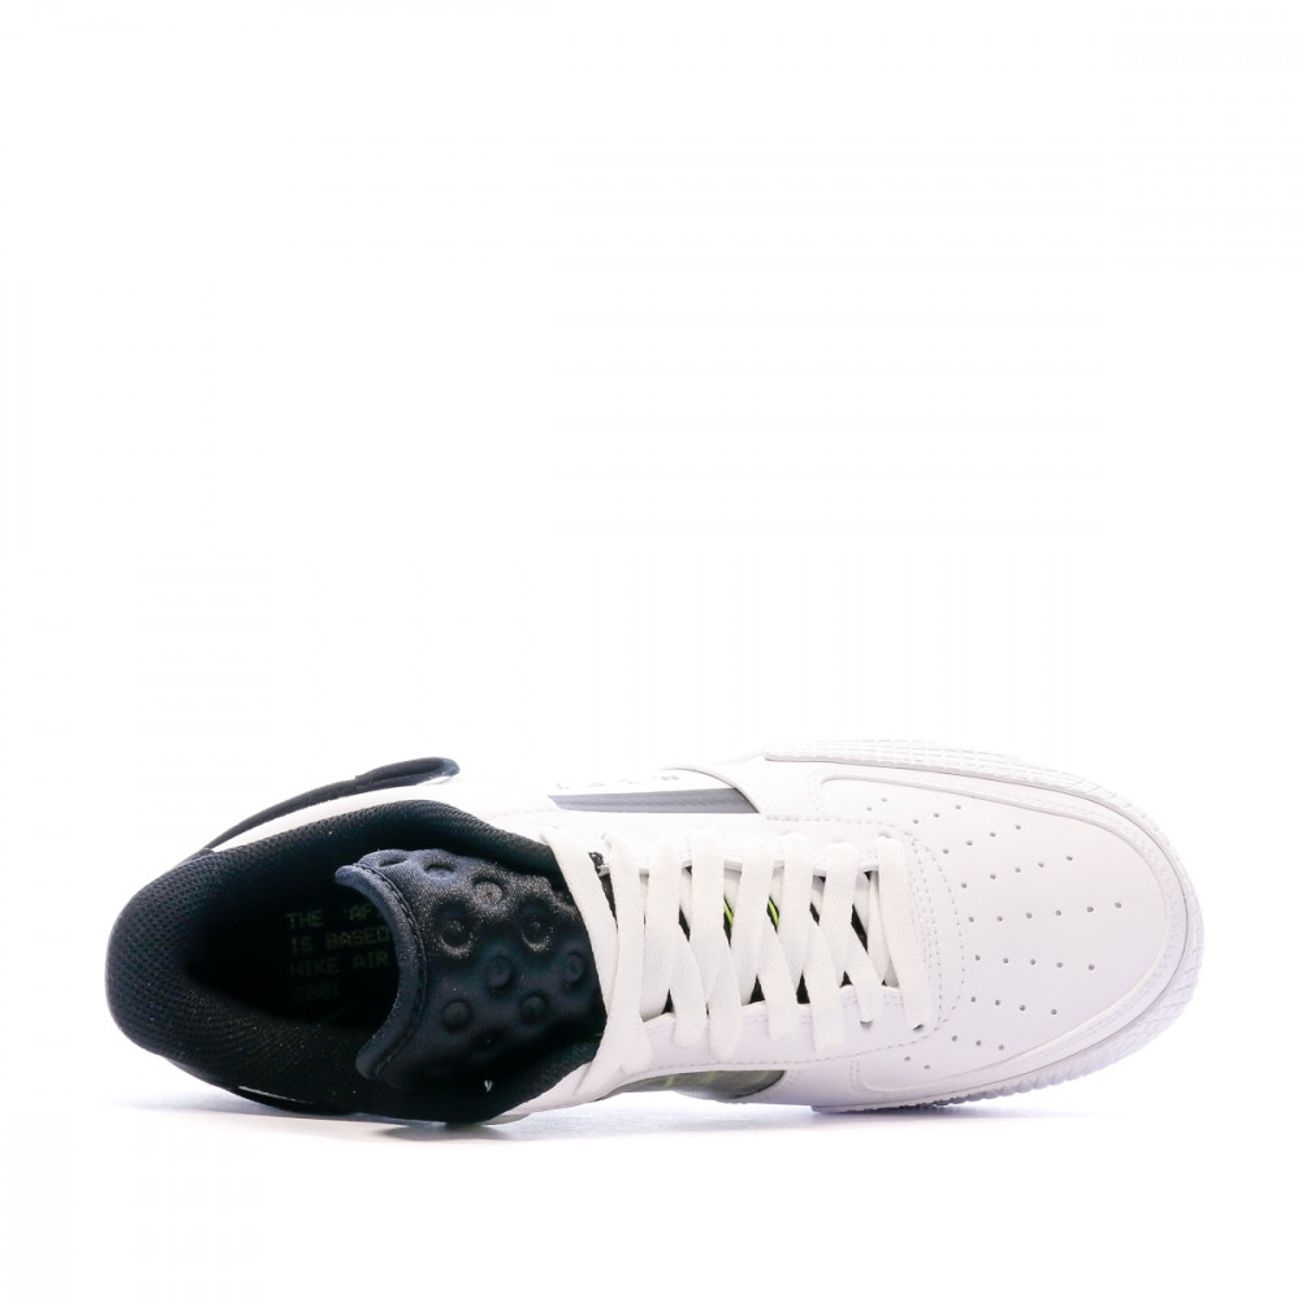 Mode- Lifestyle homme NIKE Baskets blanches/noires homme Nike Air Force 1 Type